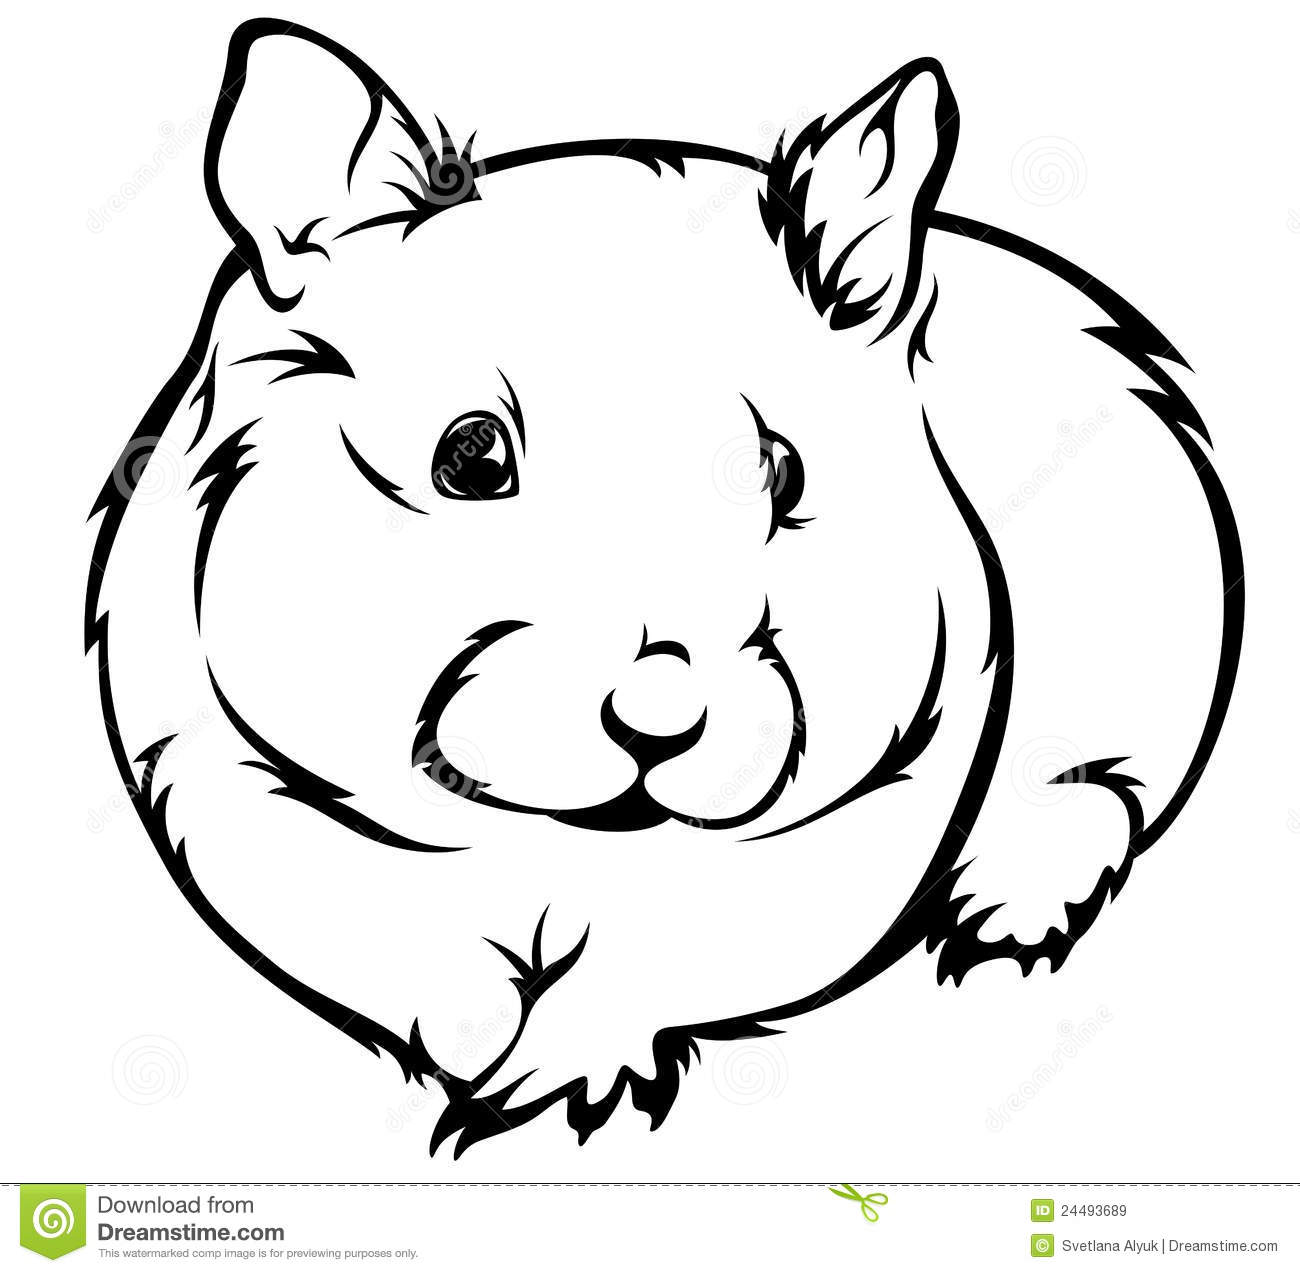 Fuzzy clipart hamster #10